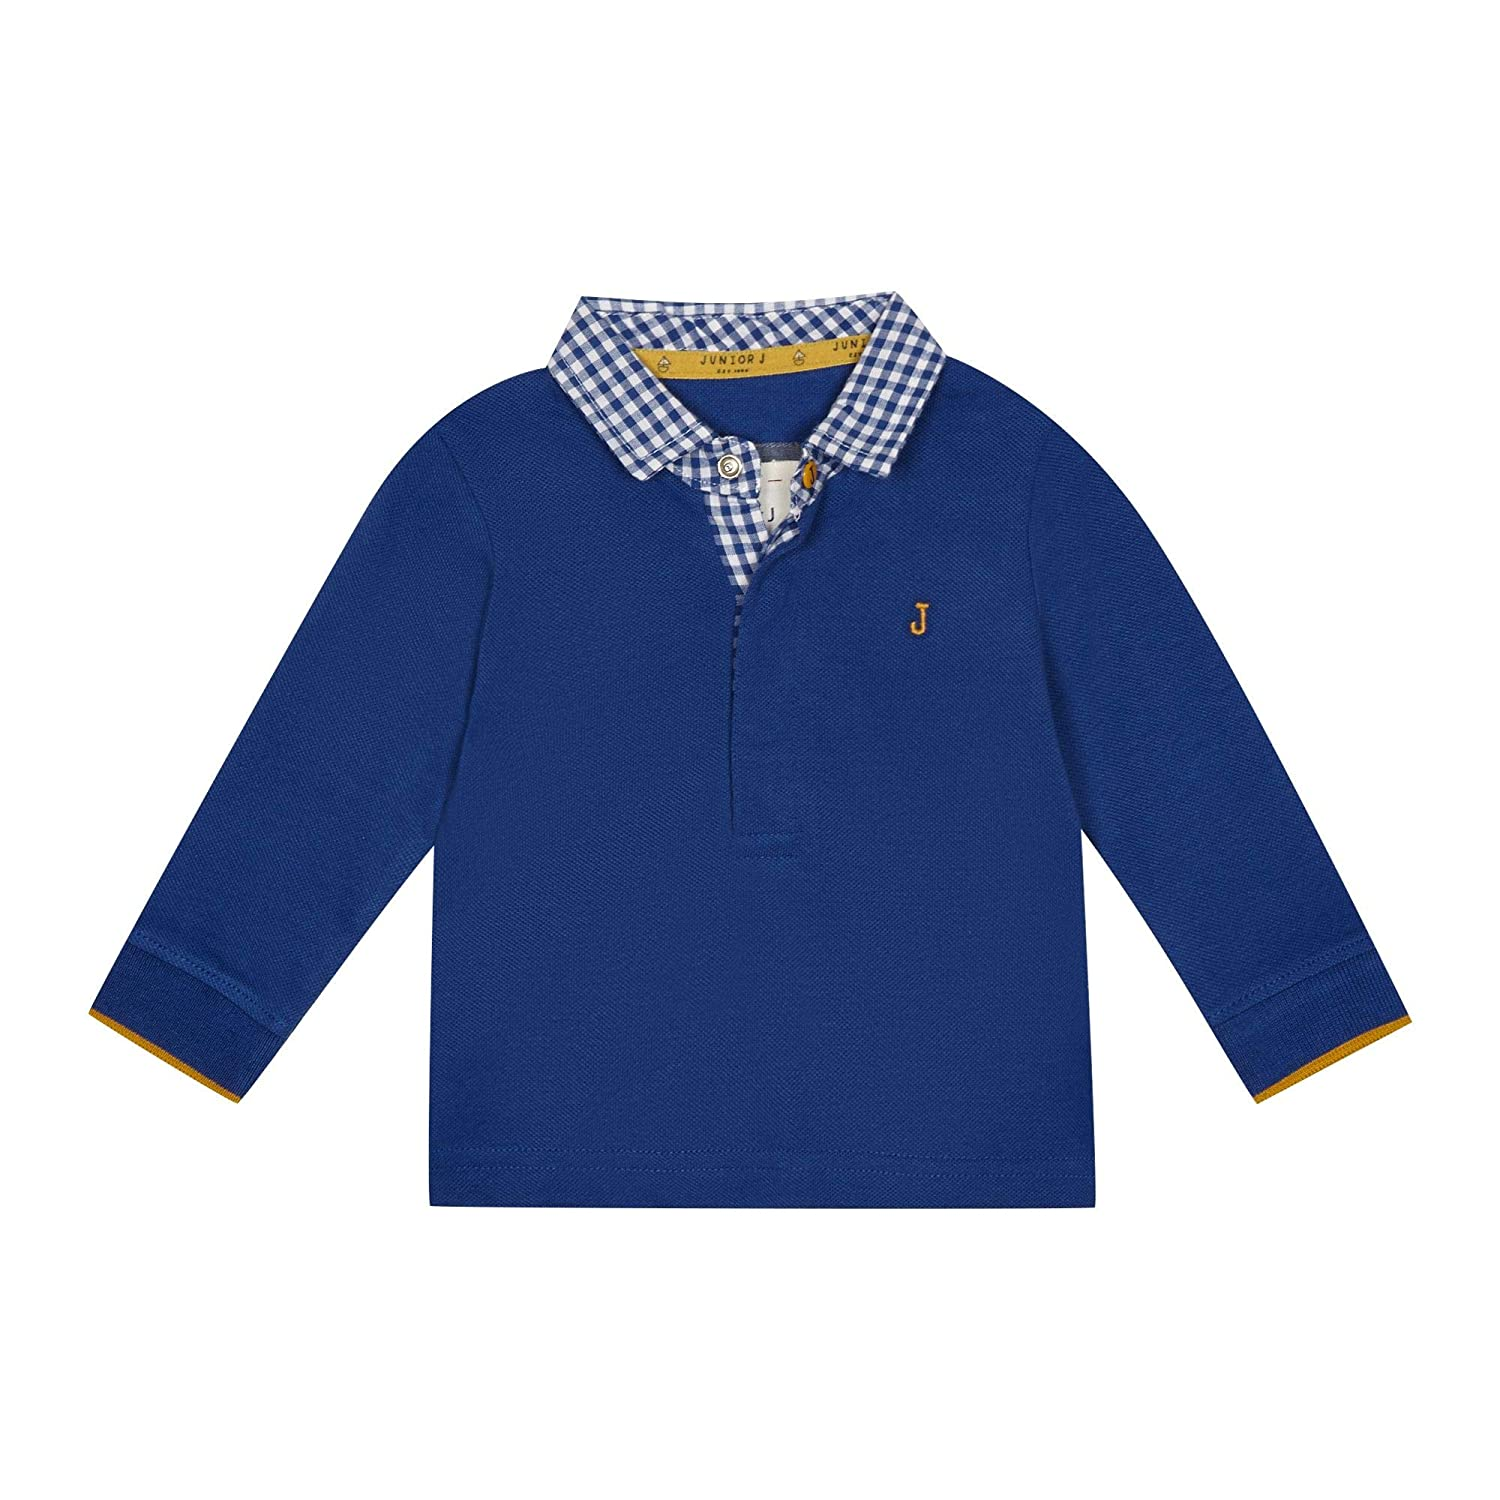 J by Jasper Conran Kids 'Baby Boys' Blue Gingham Collar Long Sleeve Polo Top